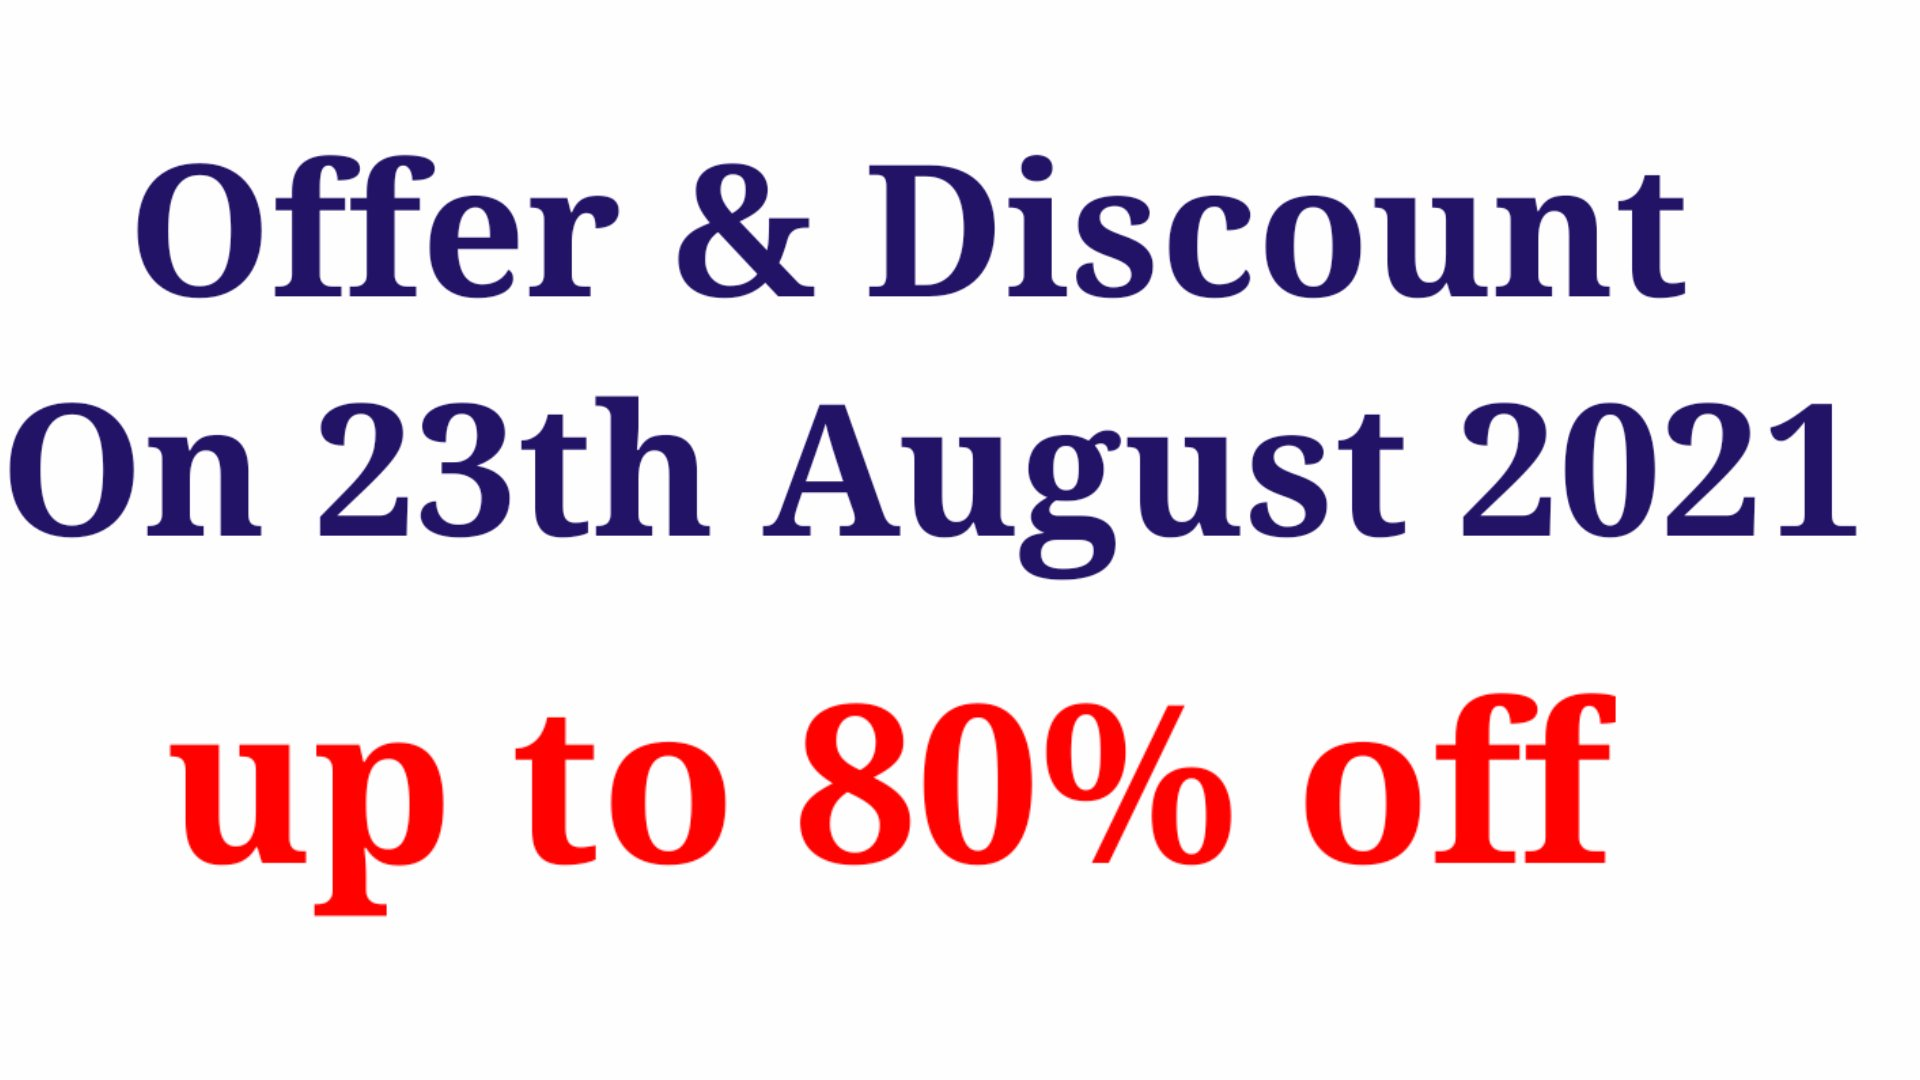 Today's Offer & Discount on 23th August 2021